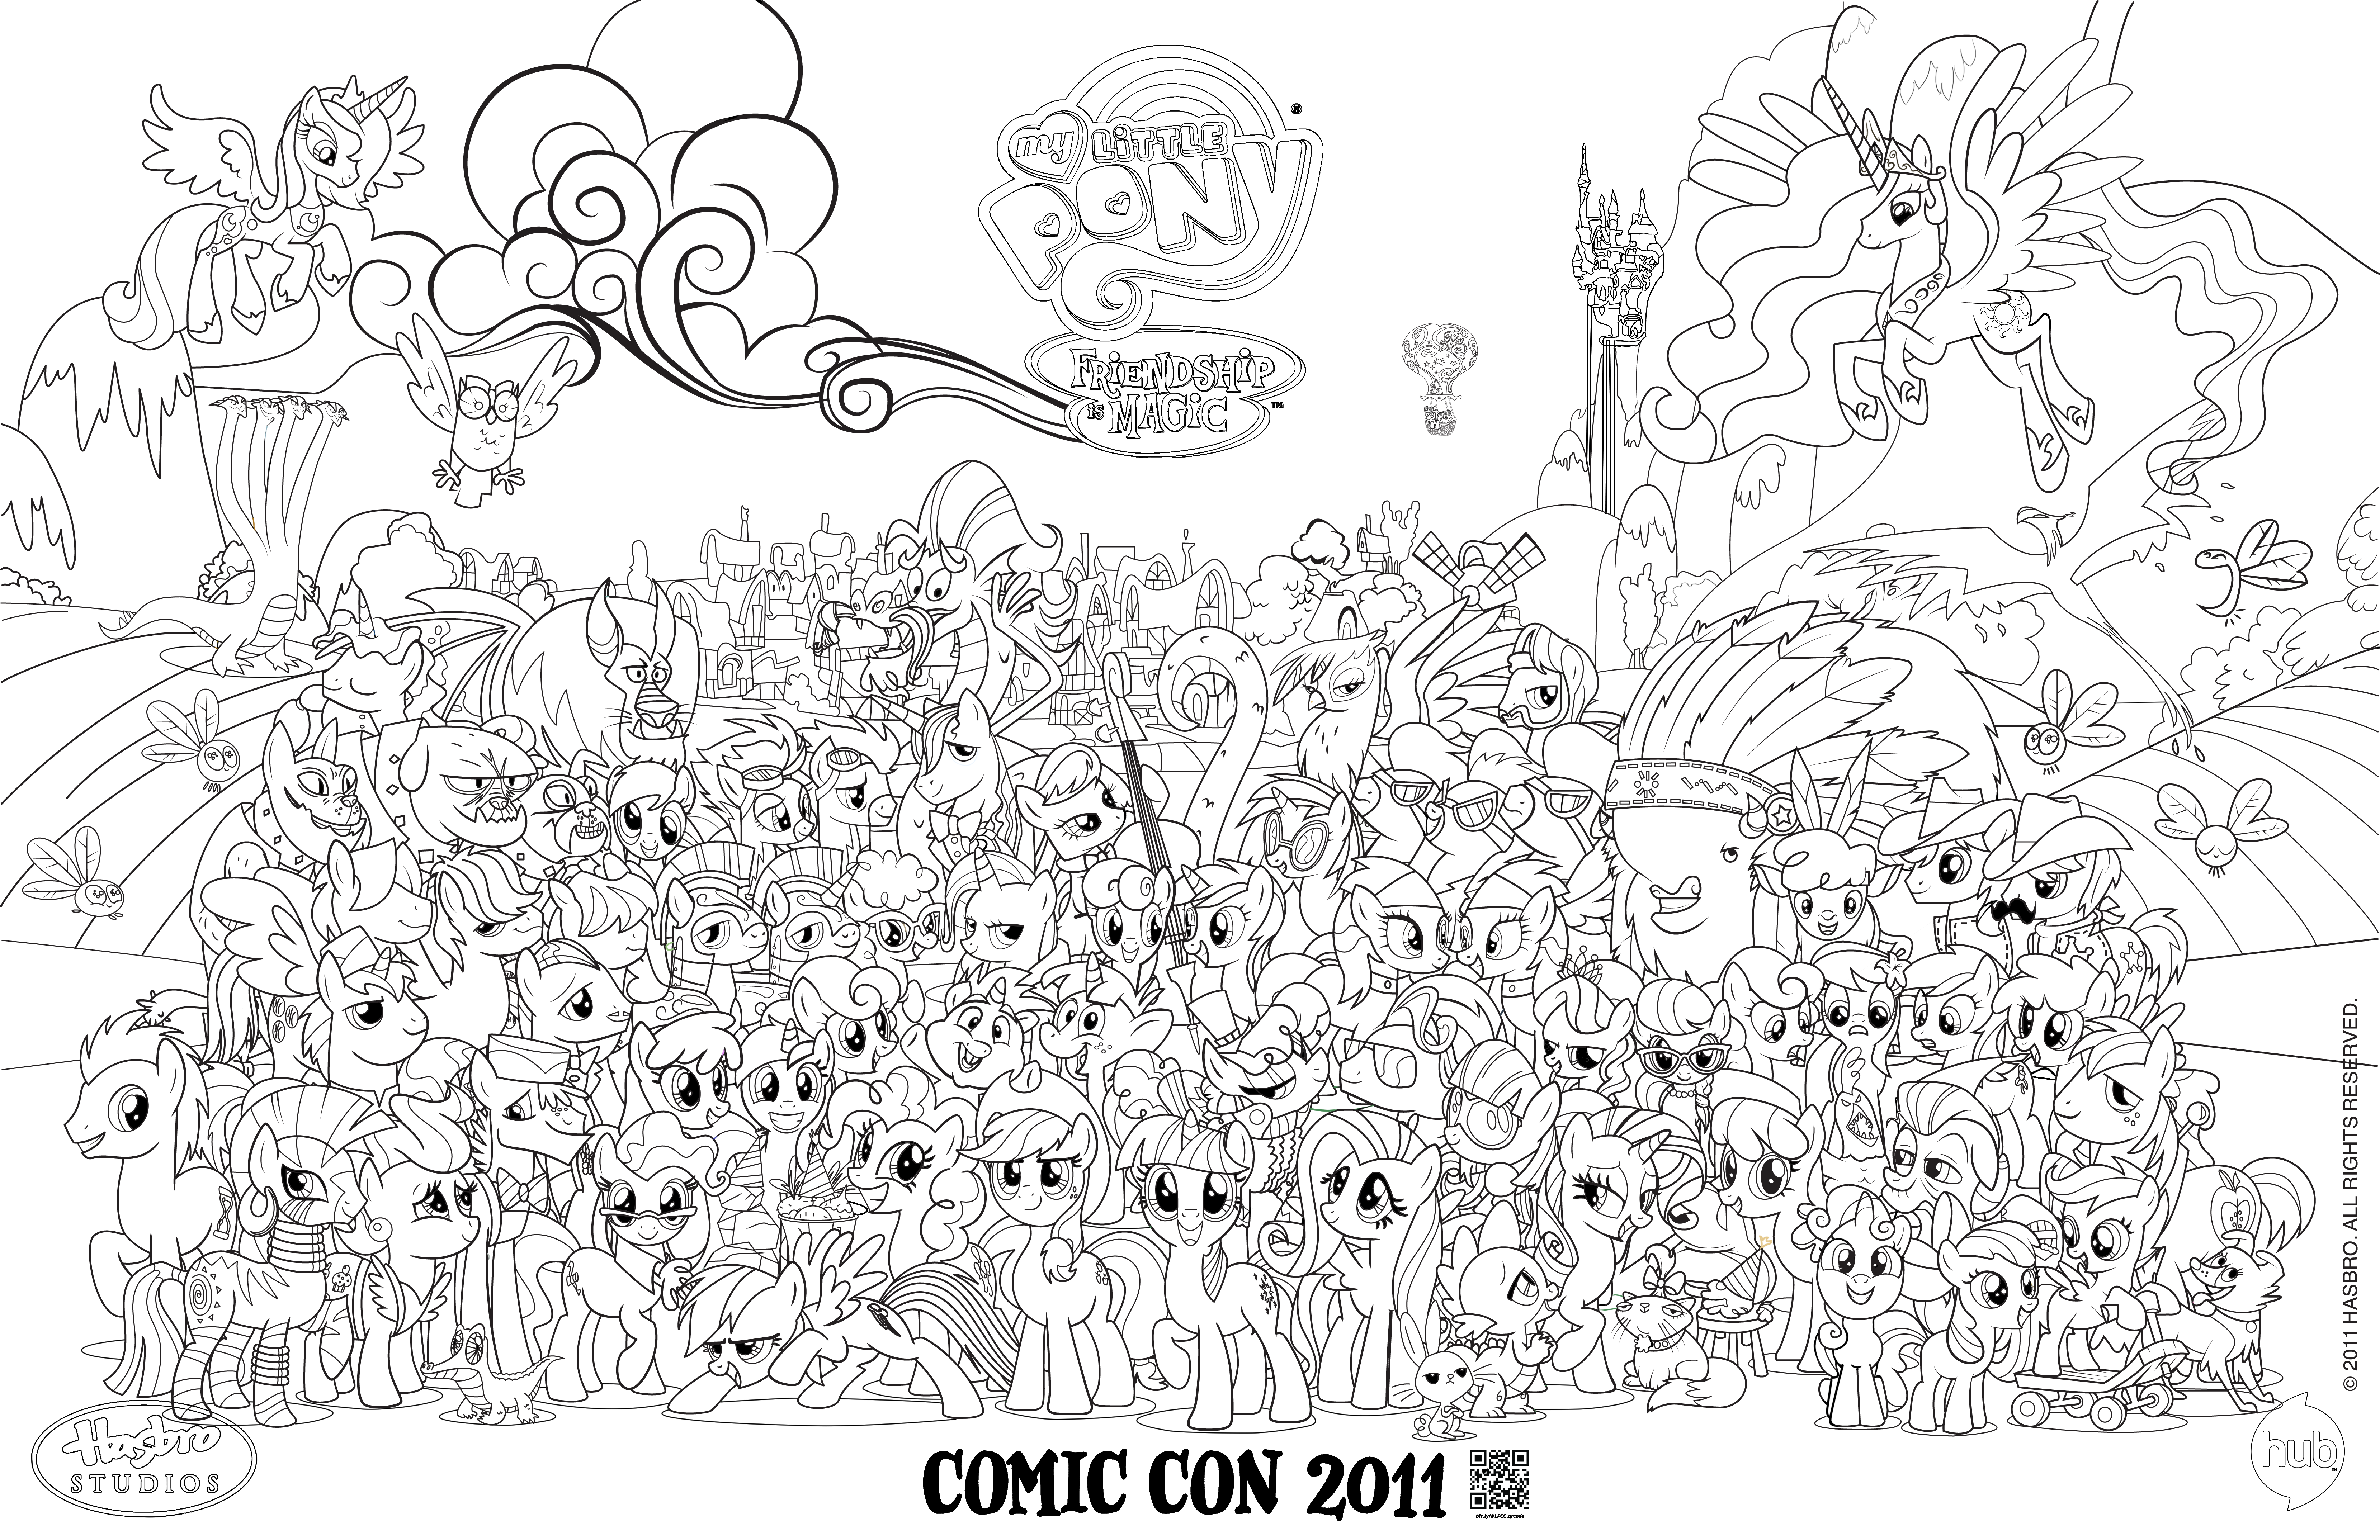 Blank Mlp Comic Con Poster For Coloring My Little Pony Coloring Cute Coloring Pages My Little Pony Printable